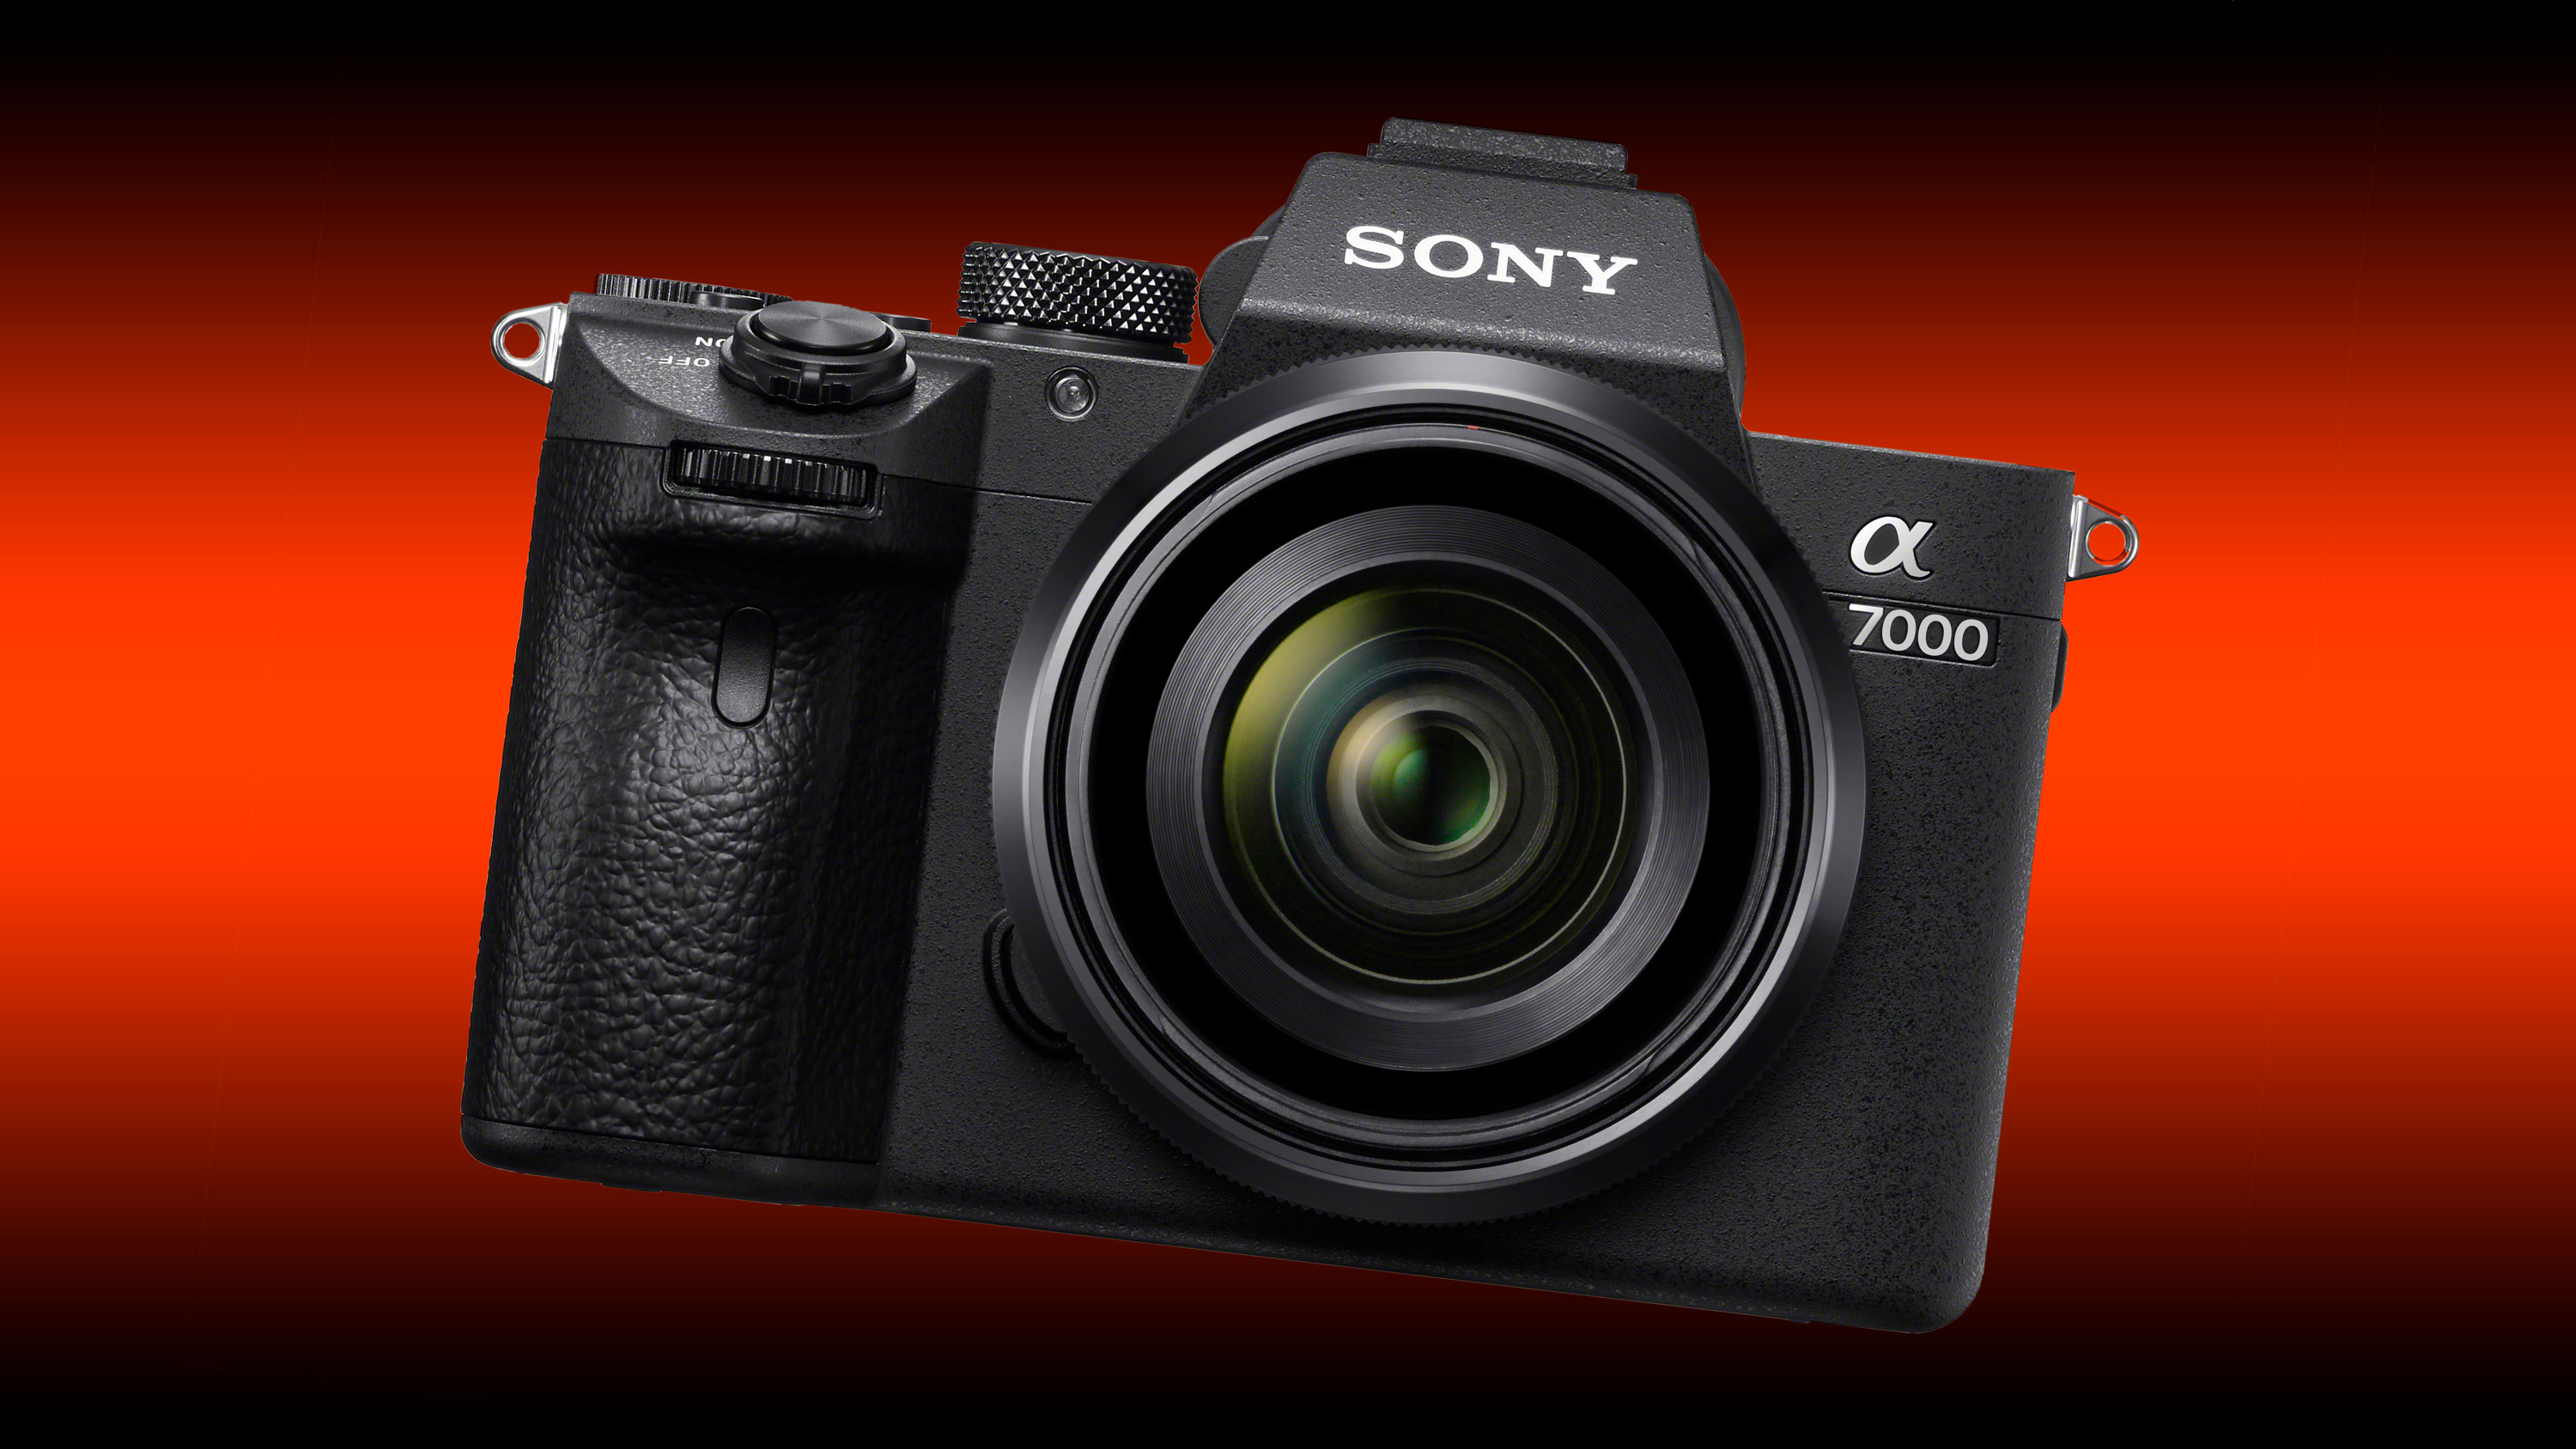 Sony A7000 rumors: what we want to see from the new Sony Alpha APS-C camera